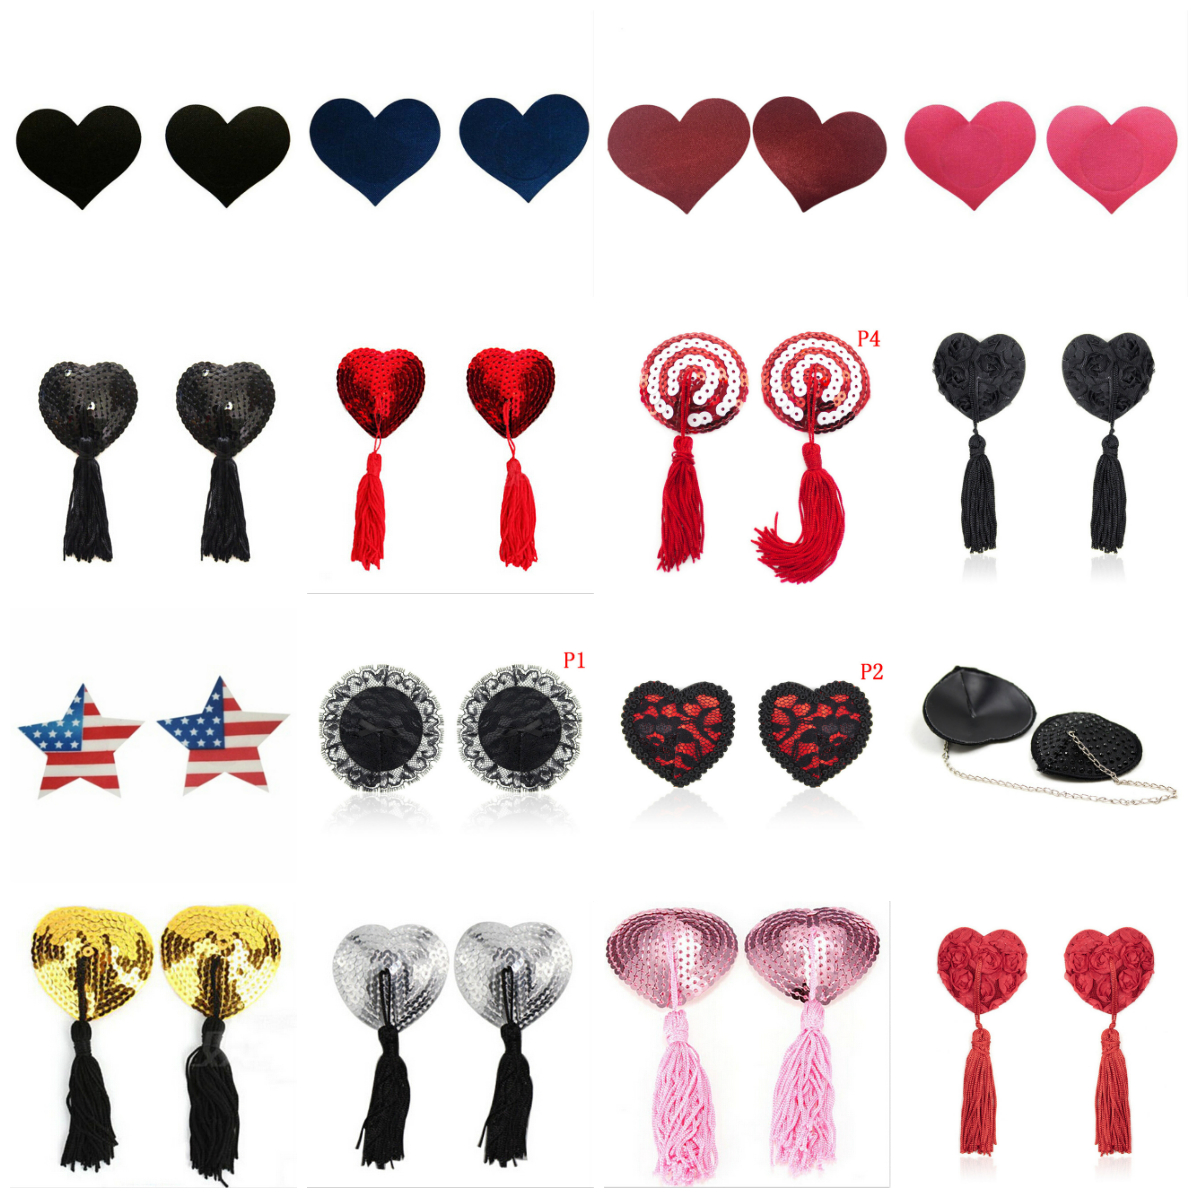 1 Pair Sexy Pasties Stickers Women Lingerie Sequin Tassel Breast Bra Nipple Cover Self Adhesive Heart Shape Bra Nipple Cover image